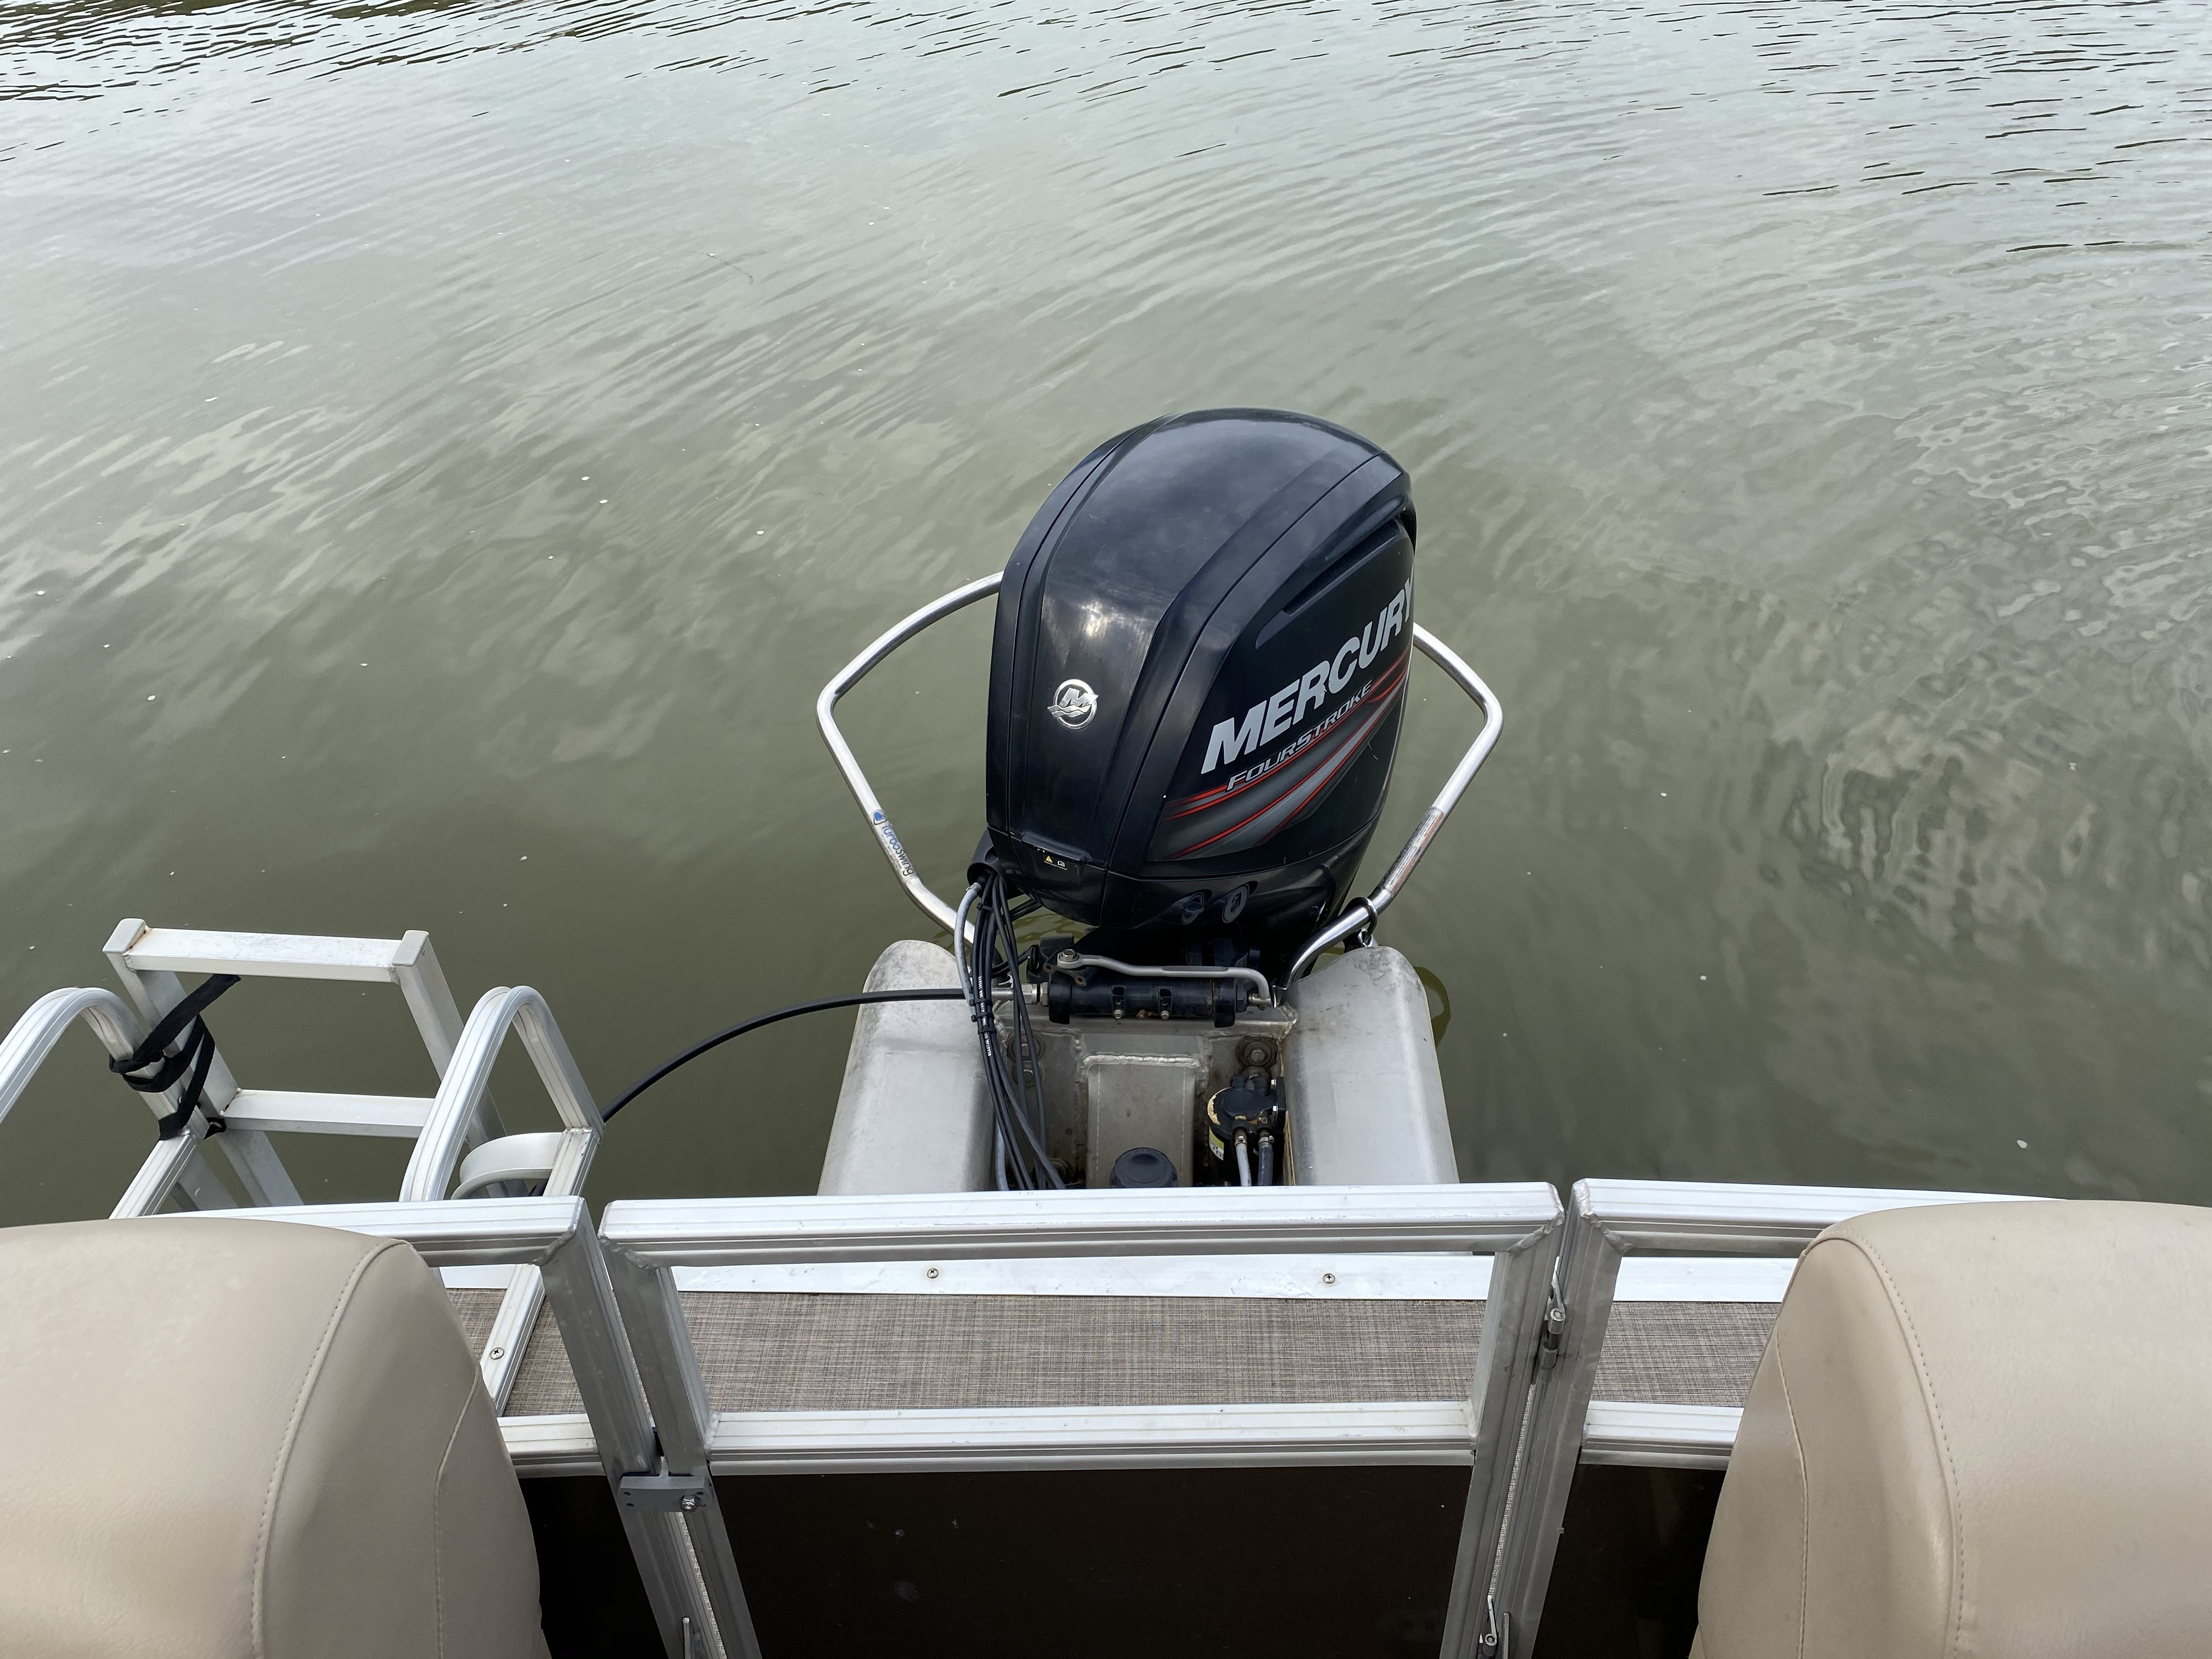 2019 Sun Tracker boat for sale, model of the boat is PARTY BARGE 22 w/ Mercury 115Hp 4S & Image # 16 of 21